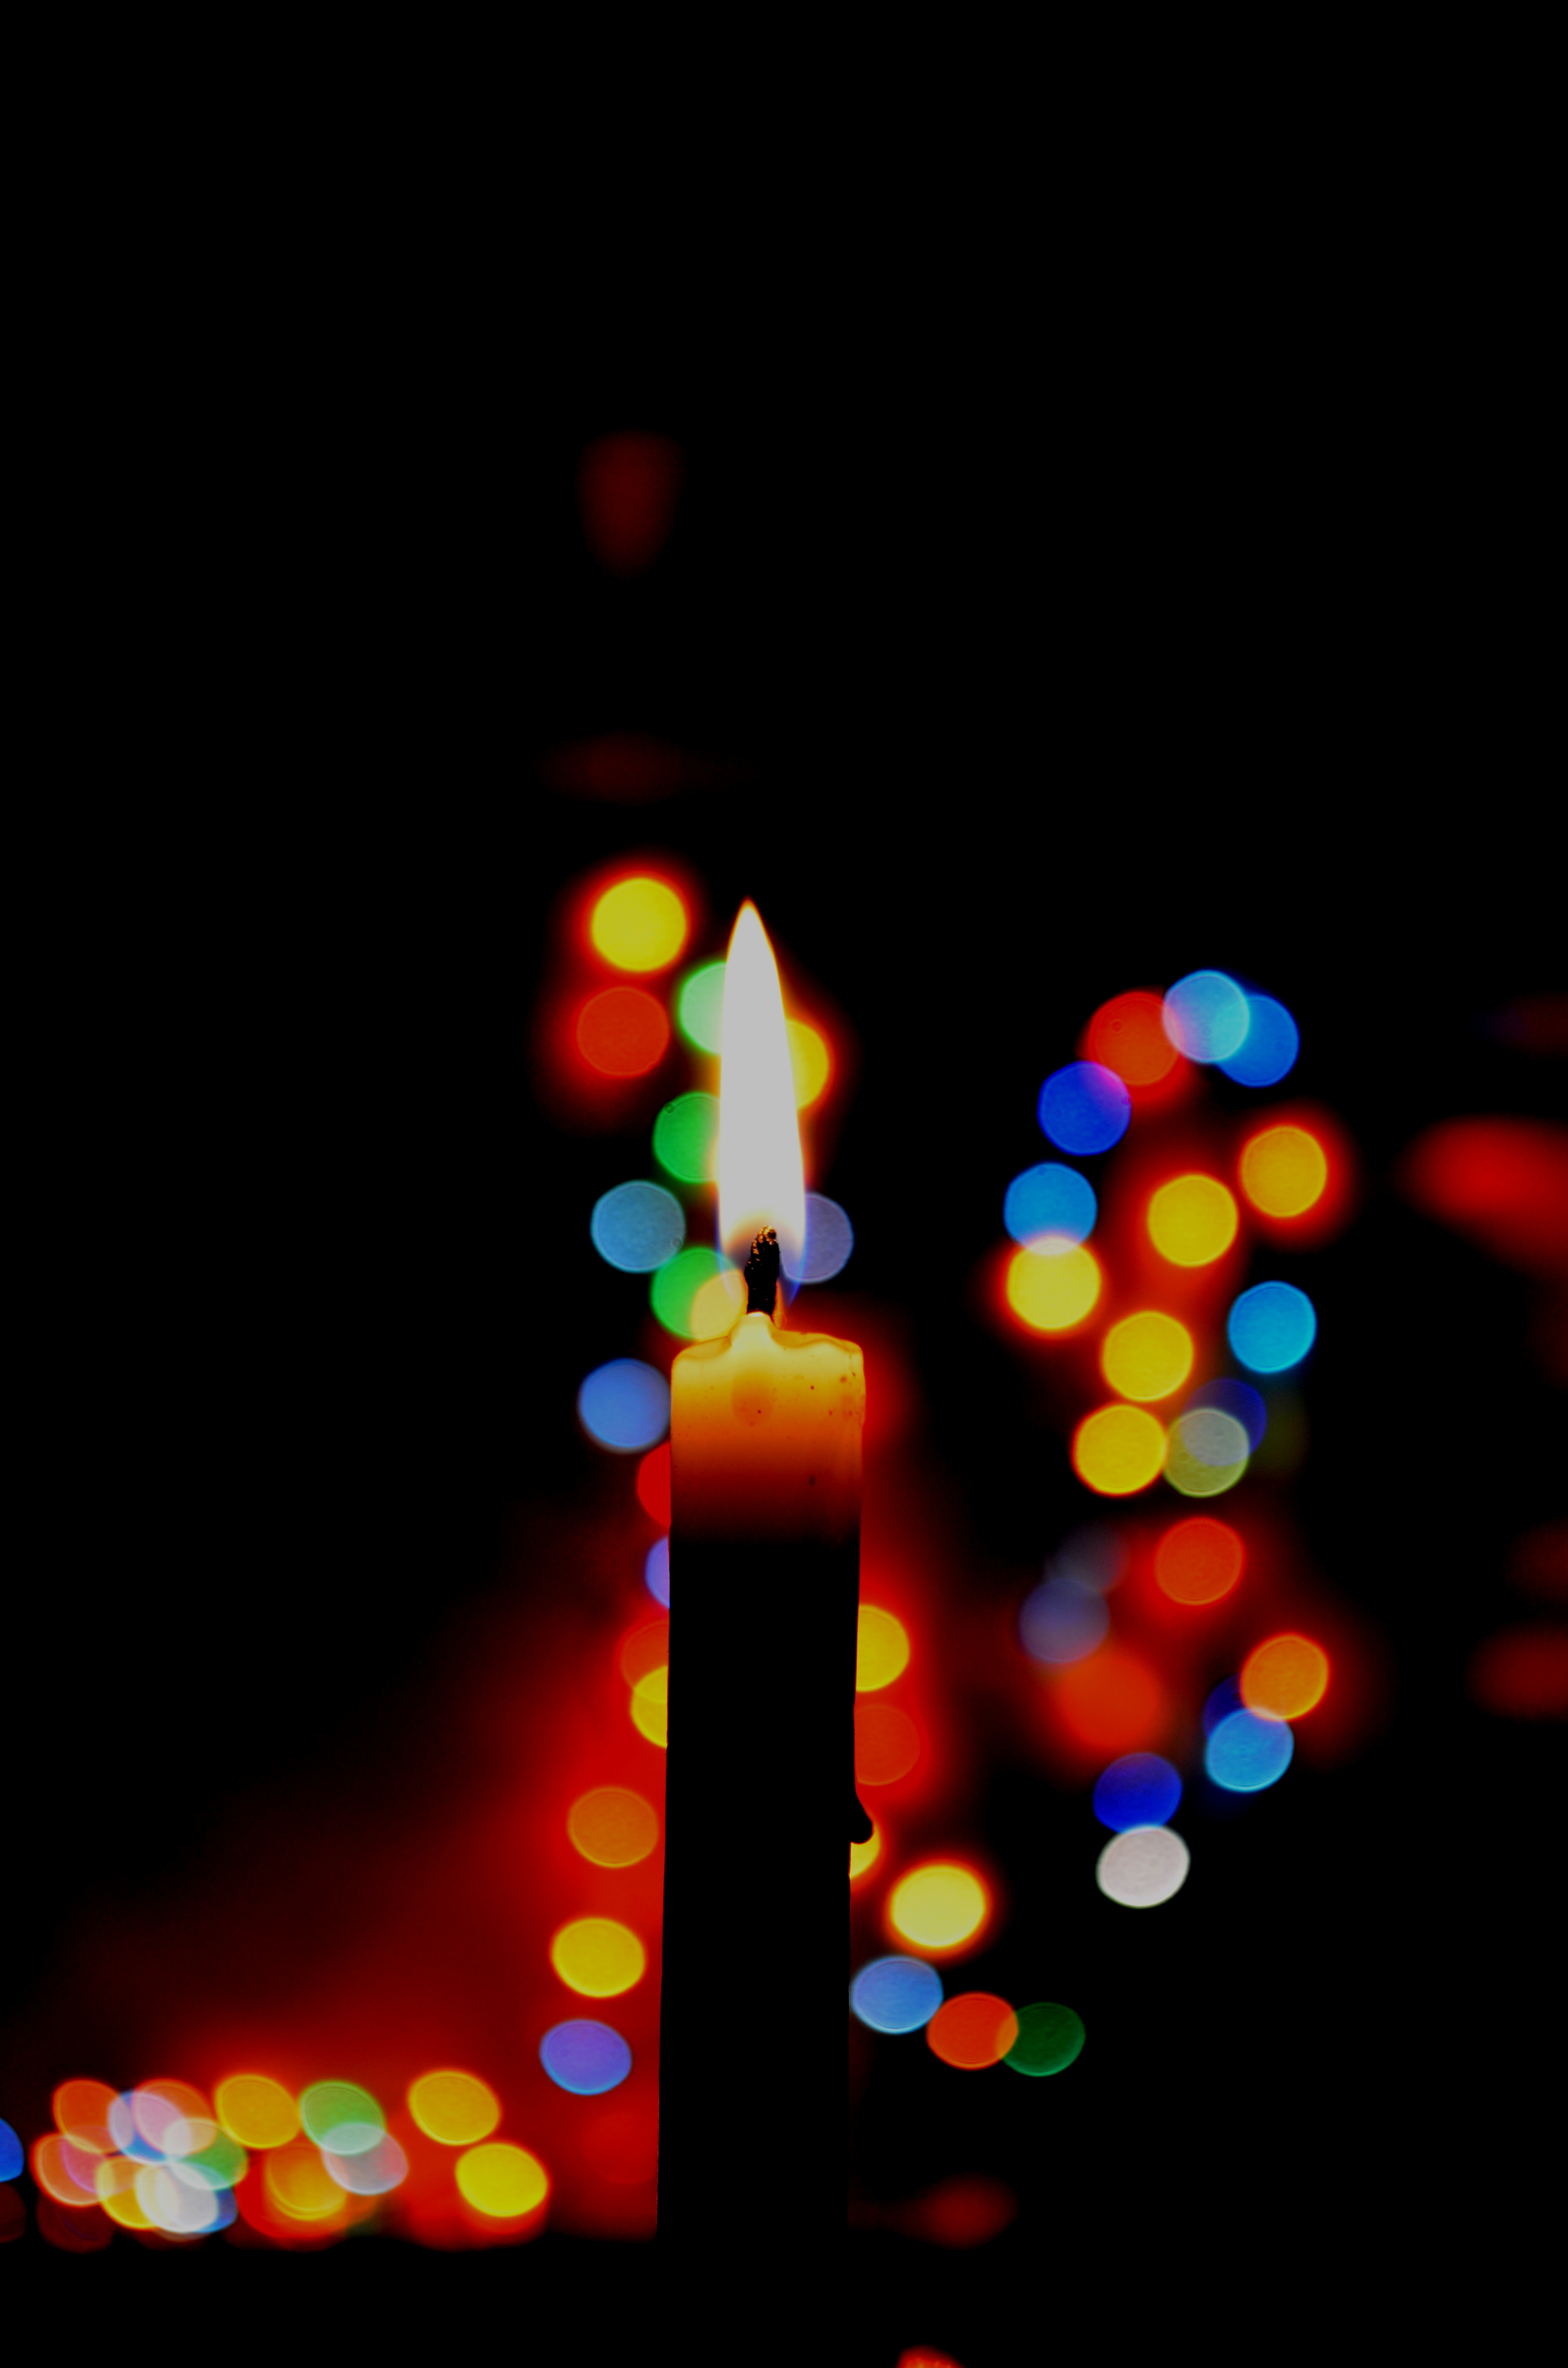 download now - Candle Christmas Lights